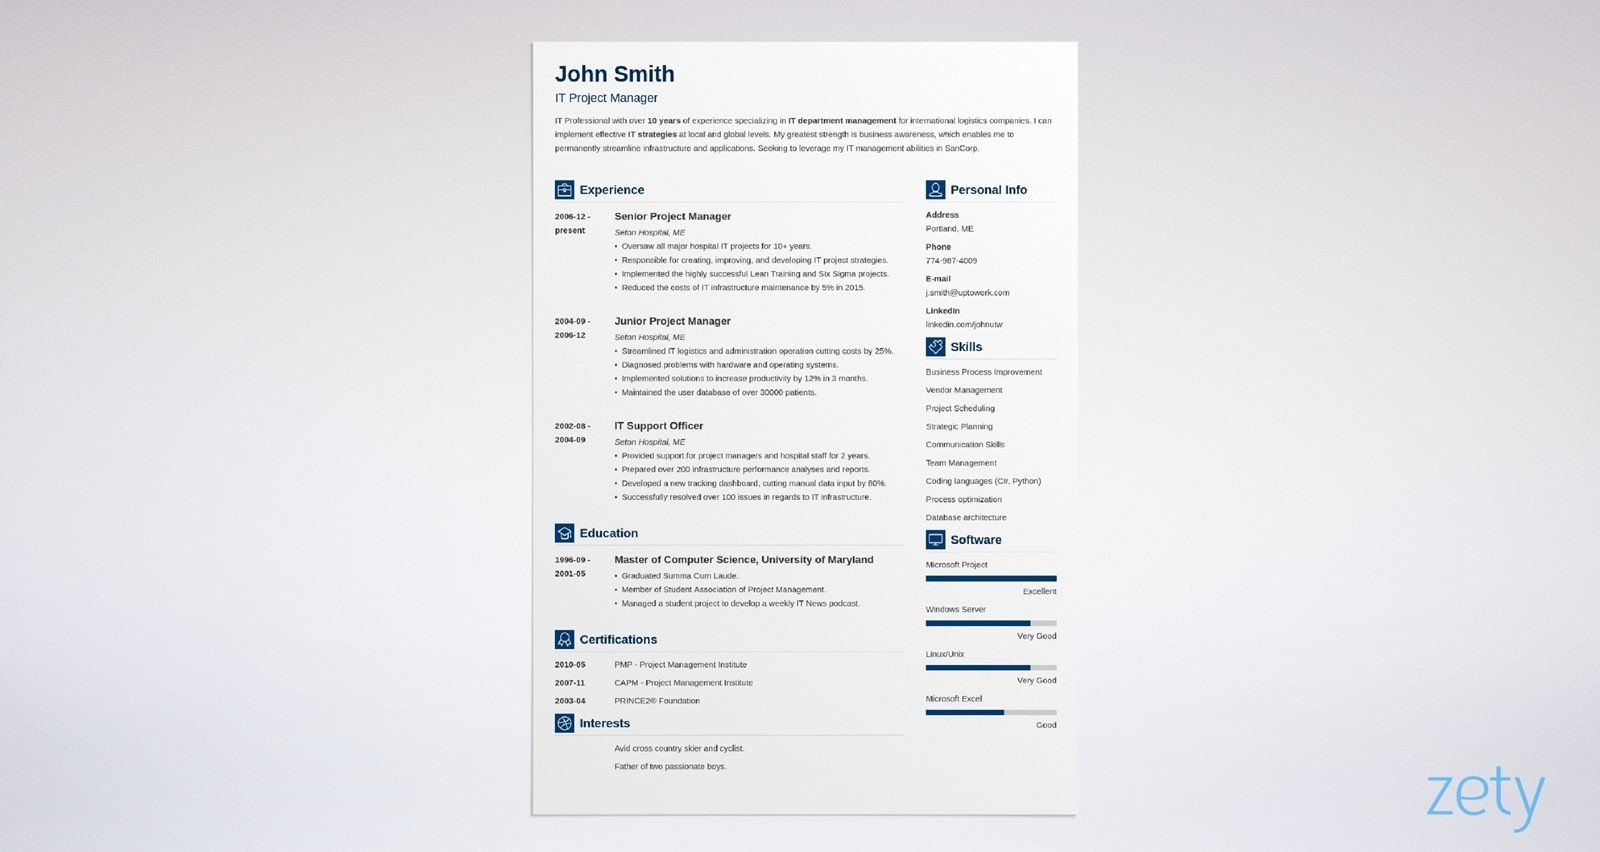 blank resume templates forms to fill in and autofill template vibes cfo instructor Resume Resume Templates Autofill